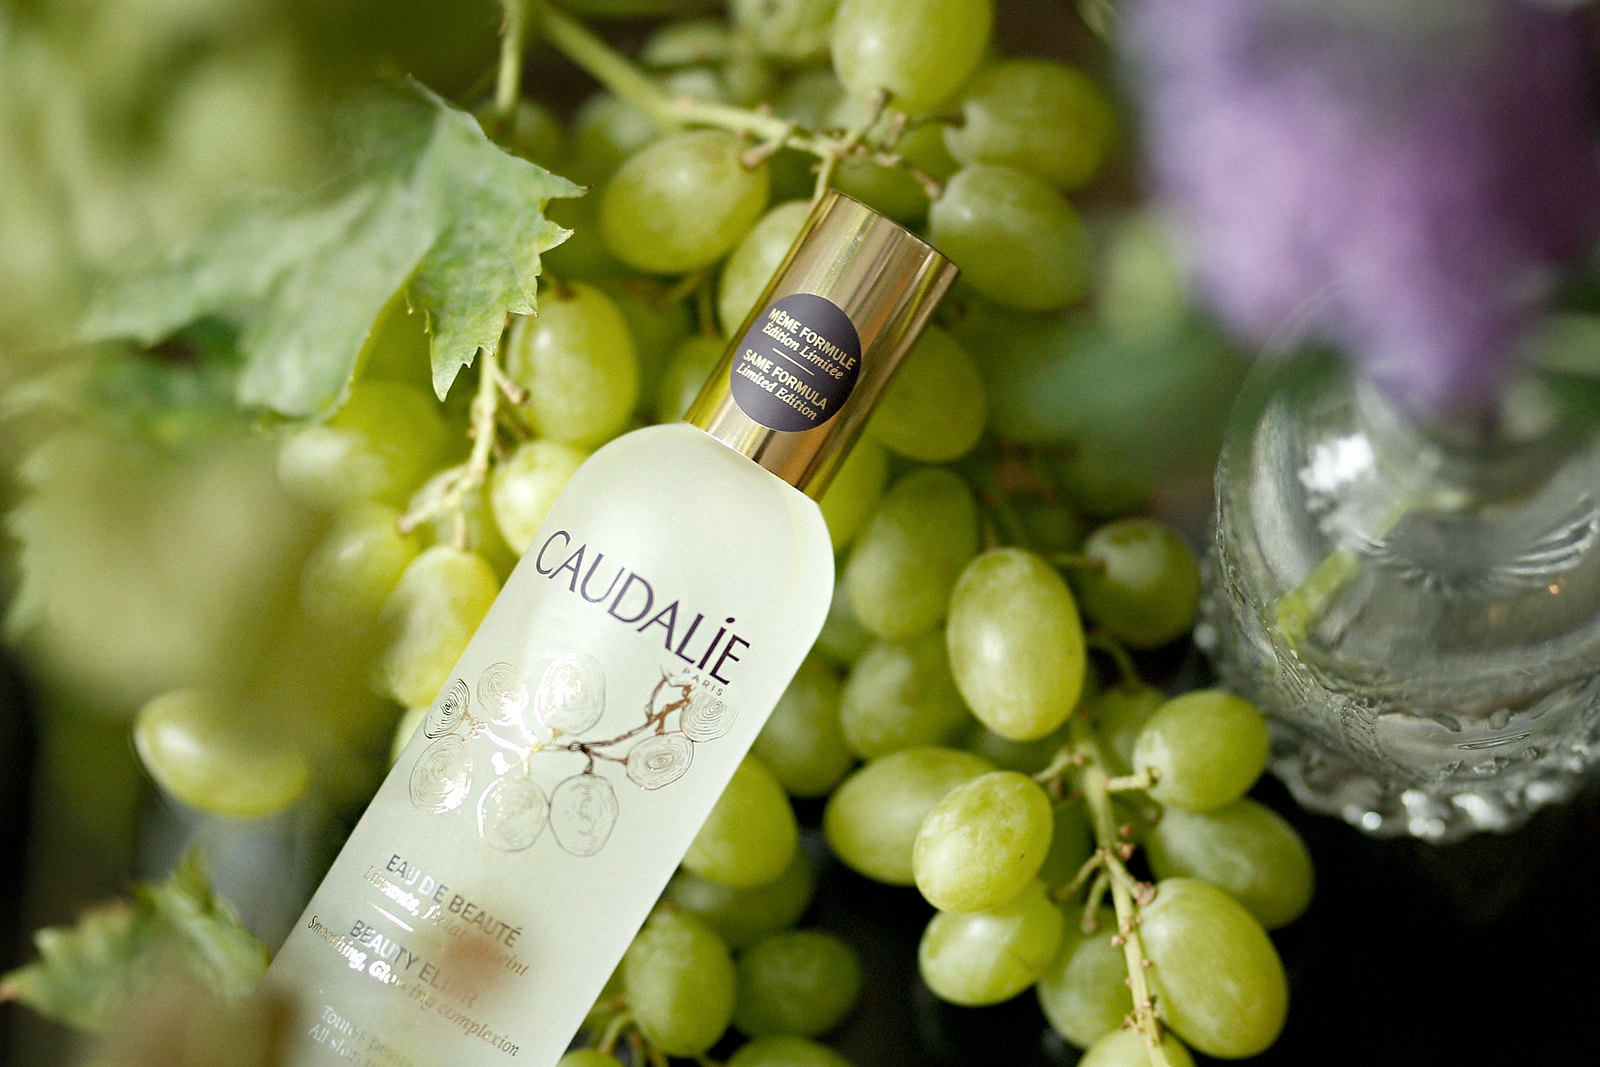 caudalie eau de beauté beauty elixir french beauty wine grapes weintrauben vino vines nature cosmetics mist water spray rosie huntington campaign summer francaise beautyblogger germanblogger cats & dogs beautyblog ricarda schernus düsseldorf 2